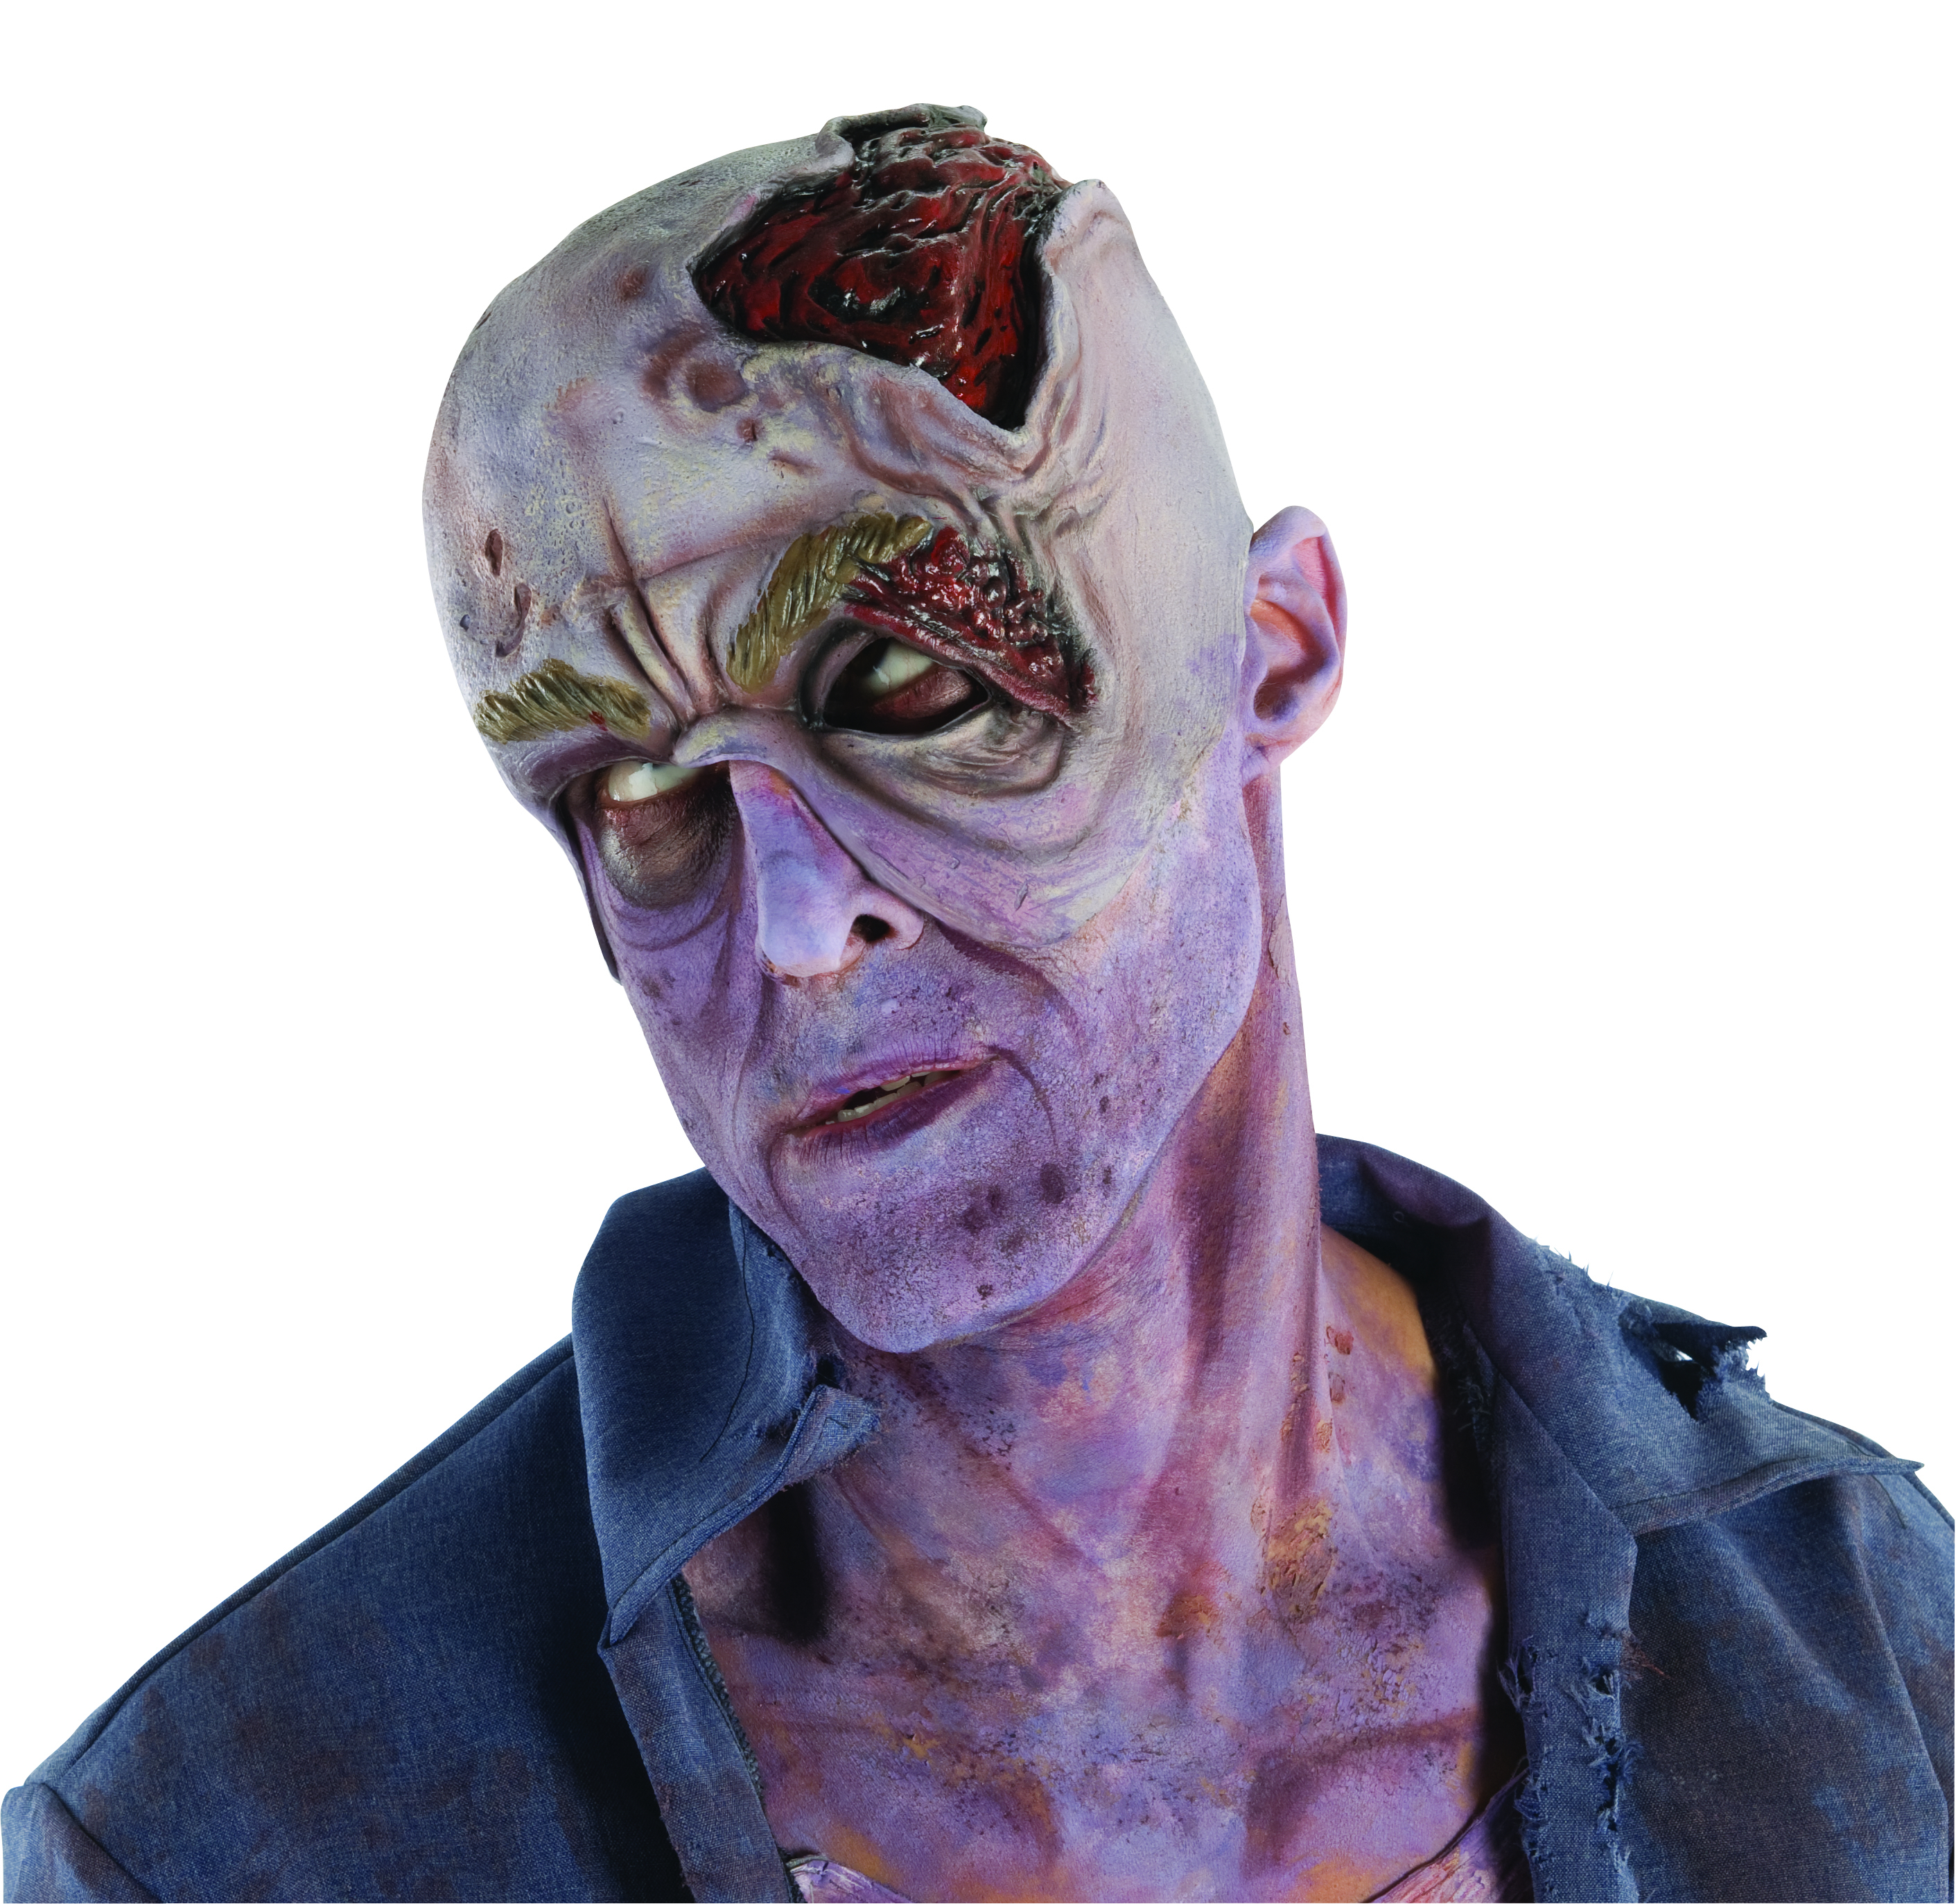 WALKING DEAD DECAYED HEAD PROSTHETIC